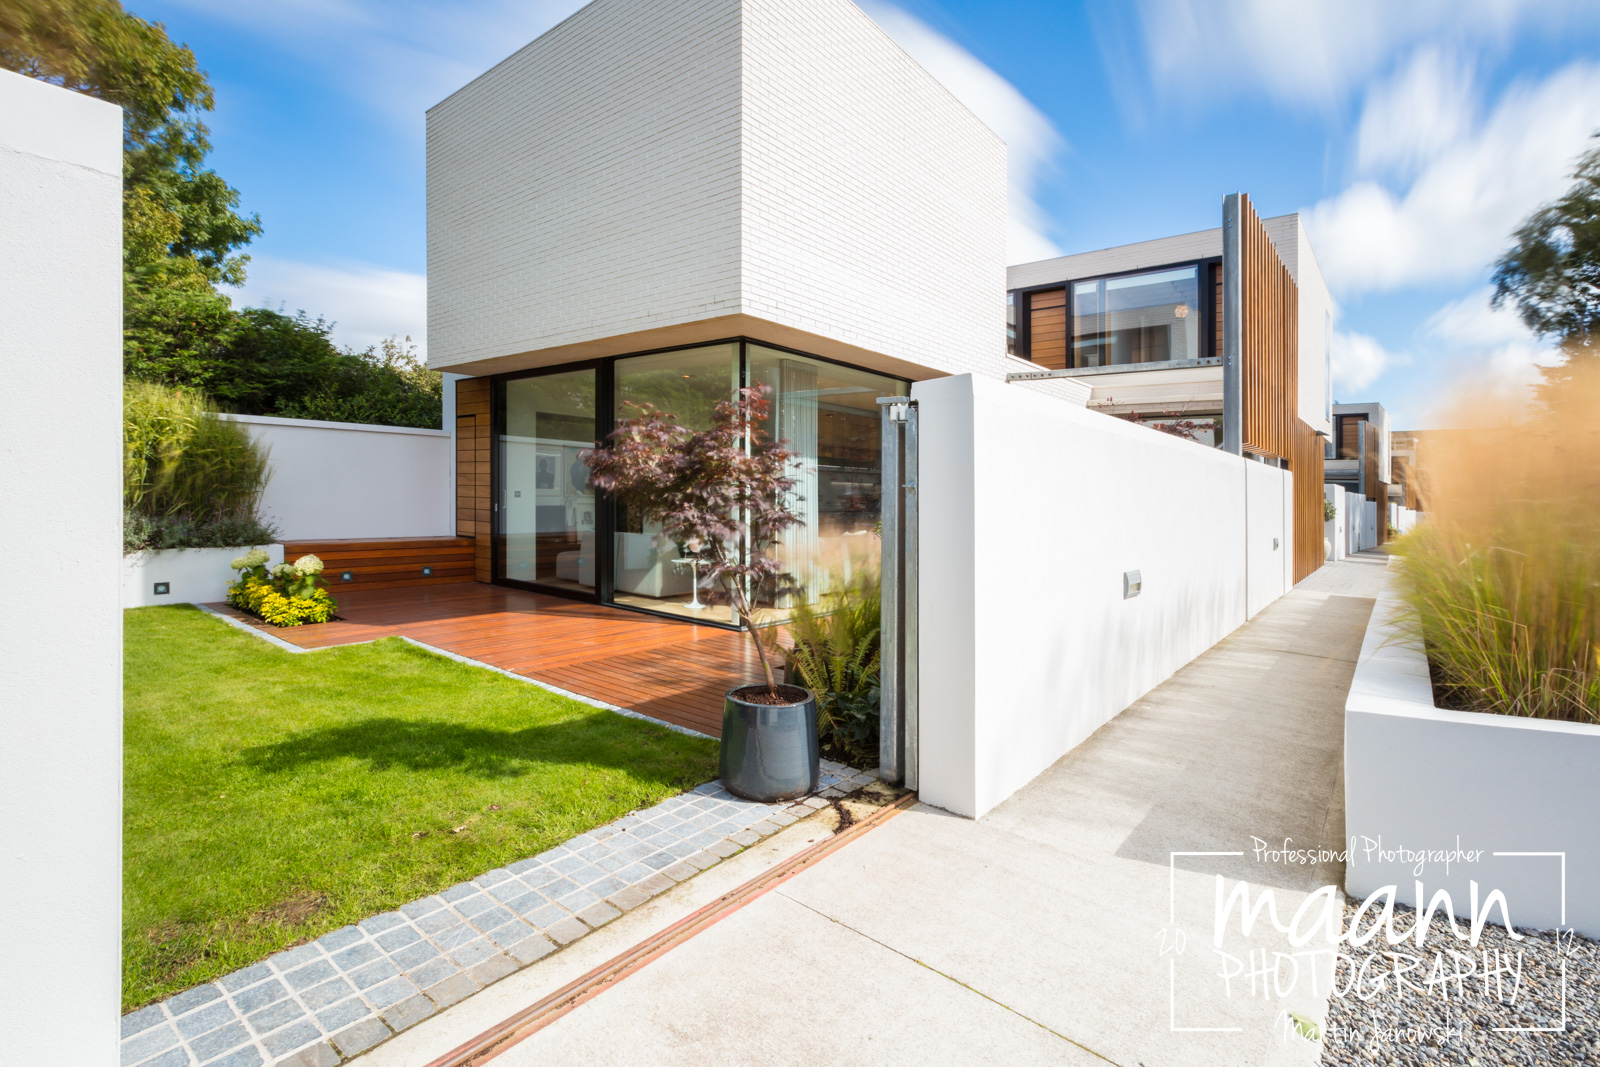 Home of the year – Season 4, Episode 2 | Architectural Photography